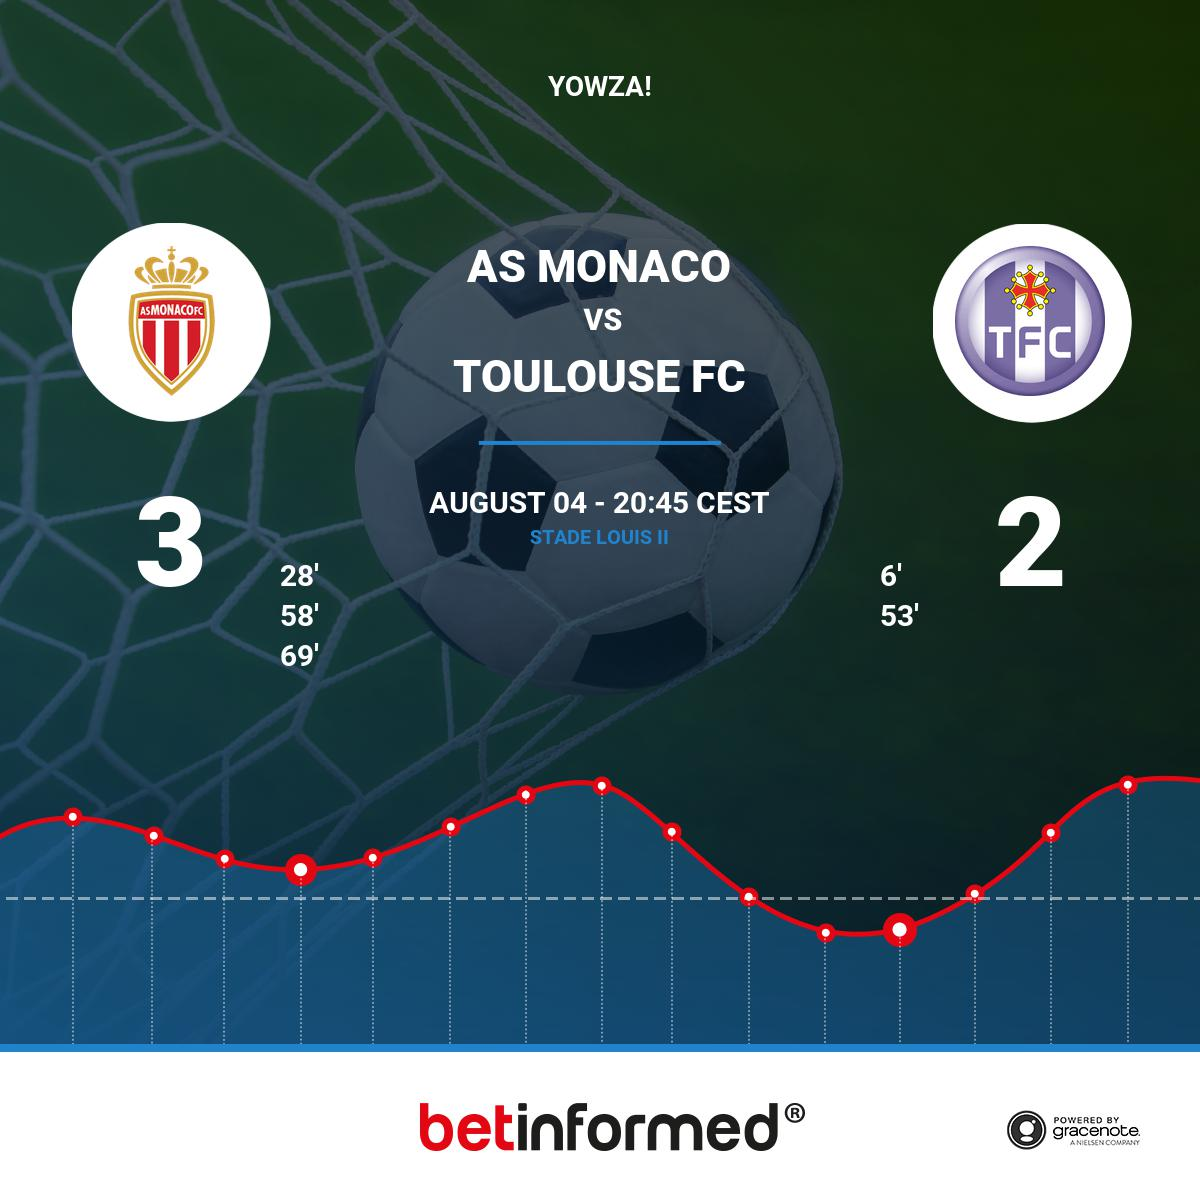 #ASMASSE, #asmonaco -vs-   Glik just scored a beautiful 3 - 2 in the 69&#39; ! #Ligue1 <br>http://pic.twitter.com/jj4zdUkuno